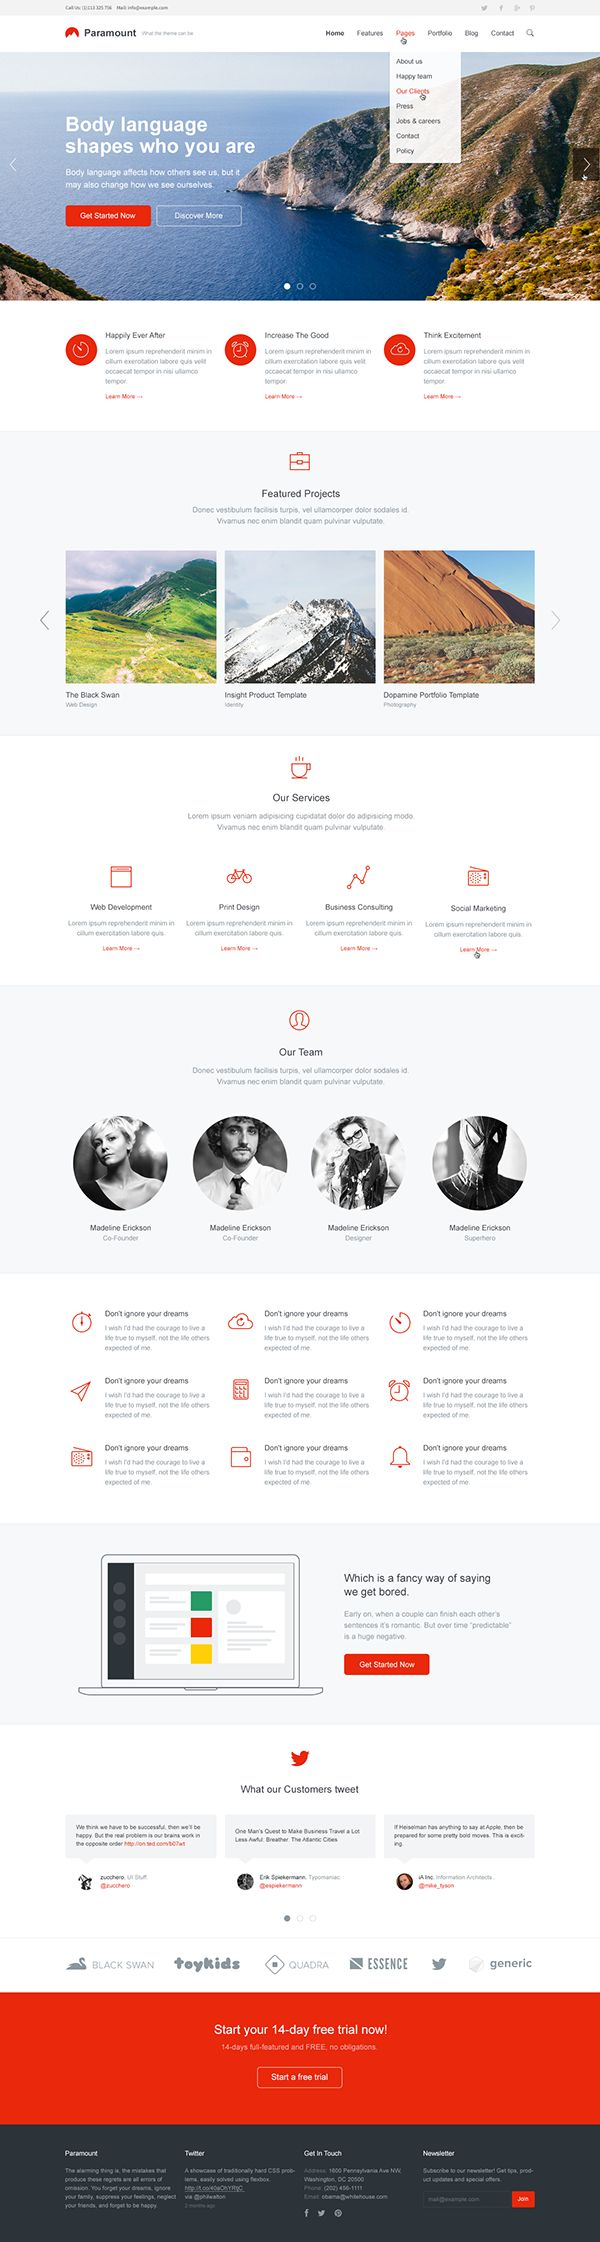 Paramount — Responsive HTML Template on Behance